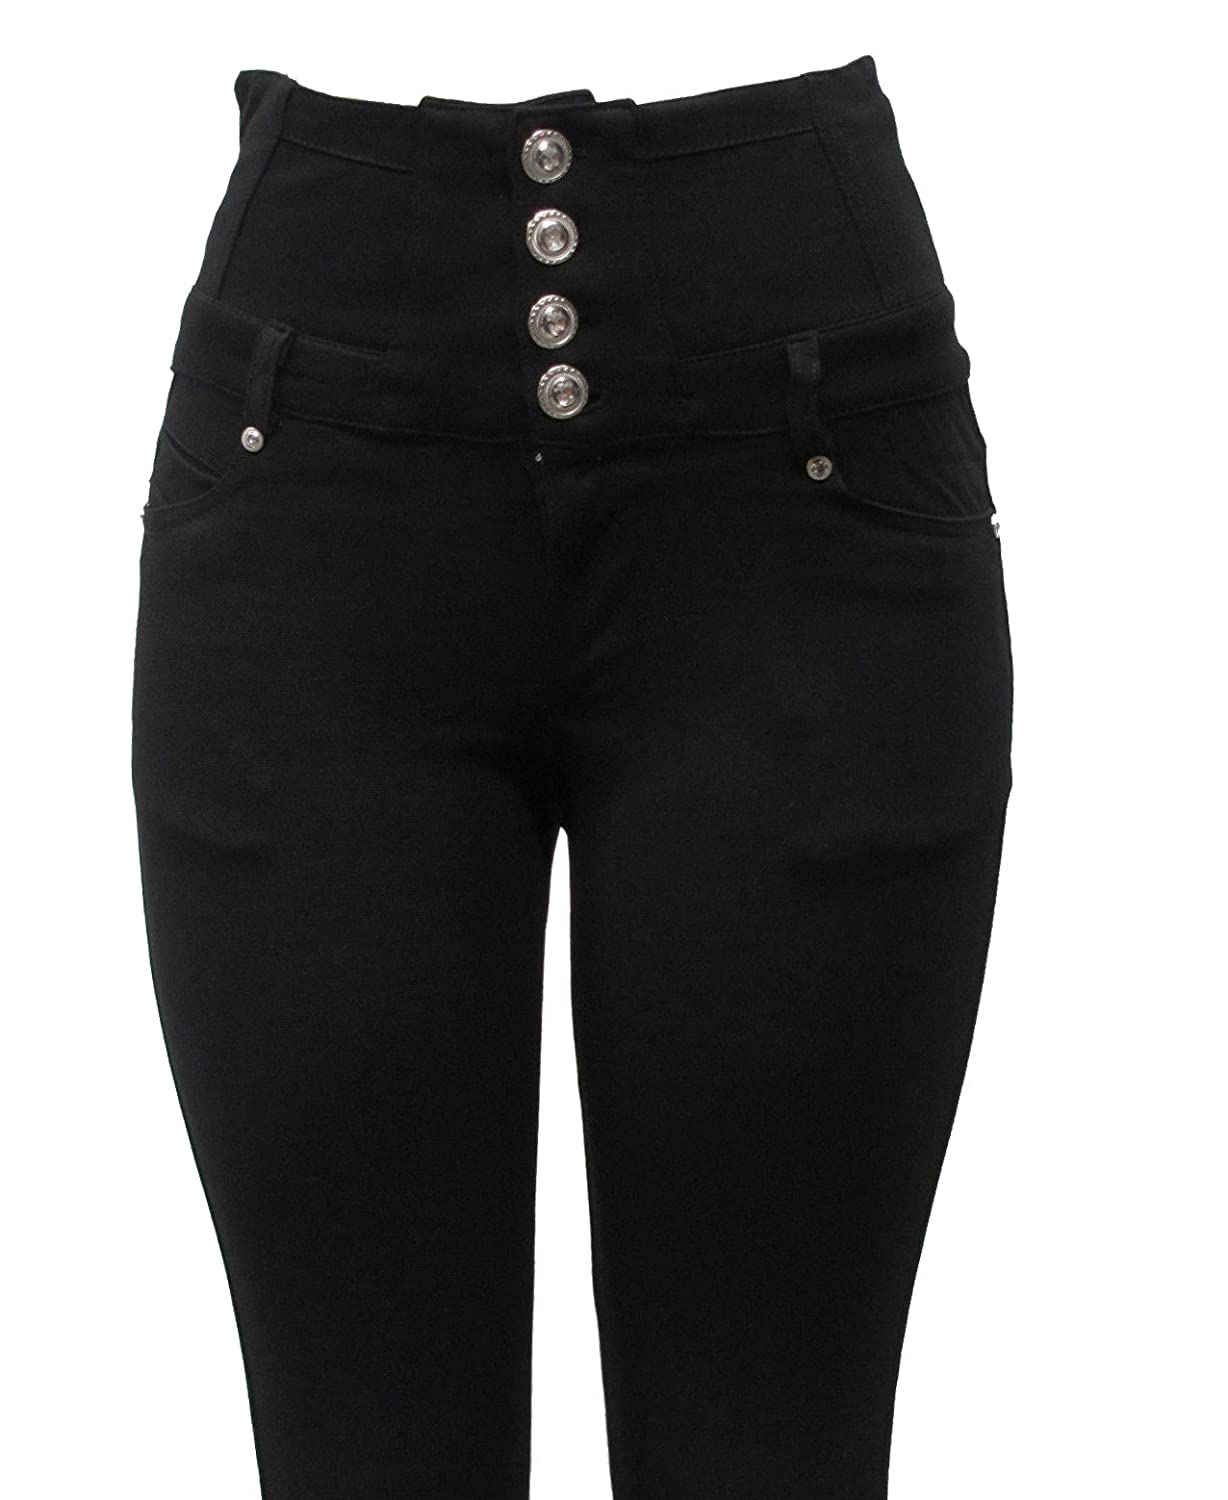 New Ladies Womens Black Fashion Stretch High Waist Four Button Skinny Jeggings Jeans Leggings UK Size 8-20